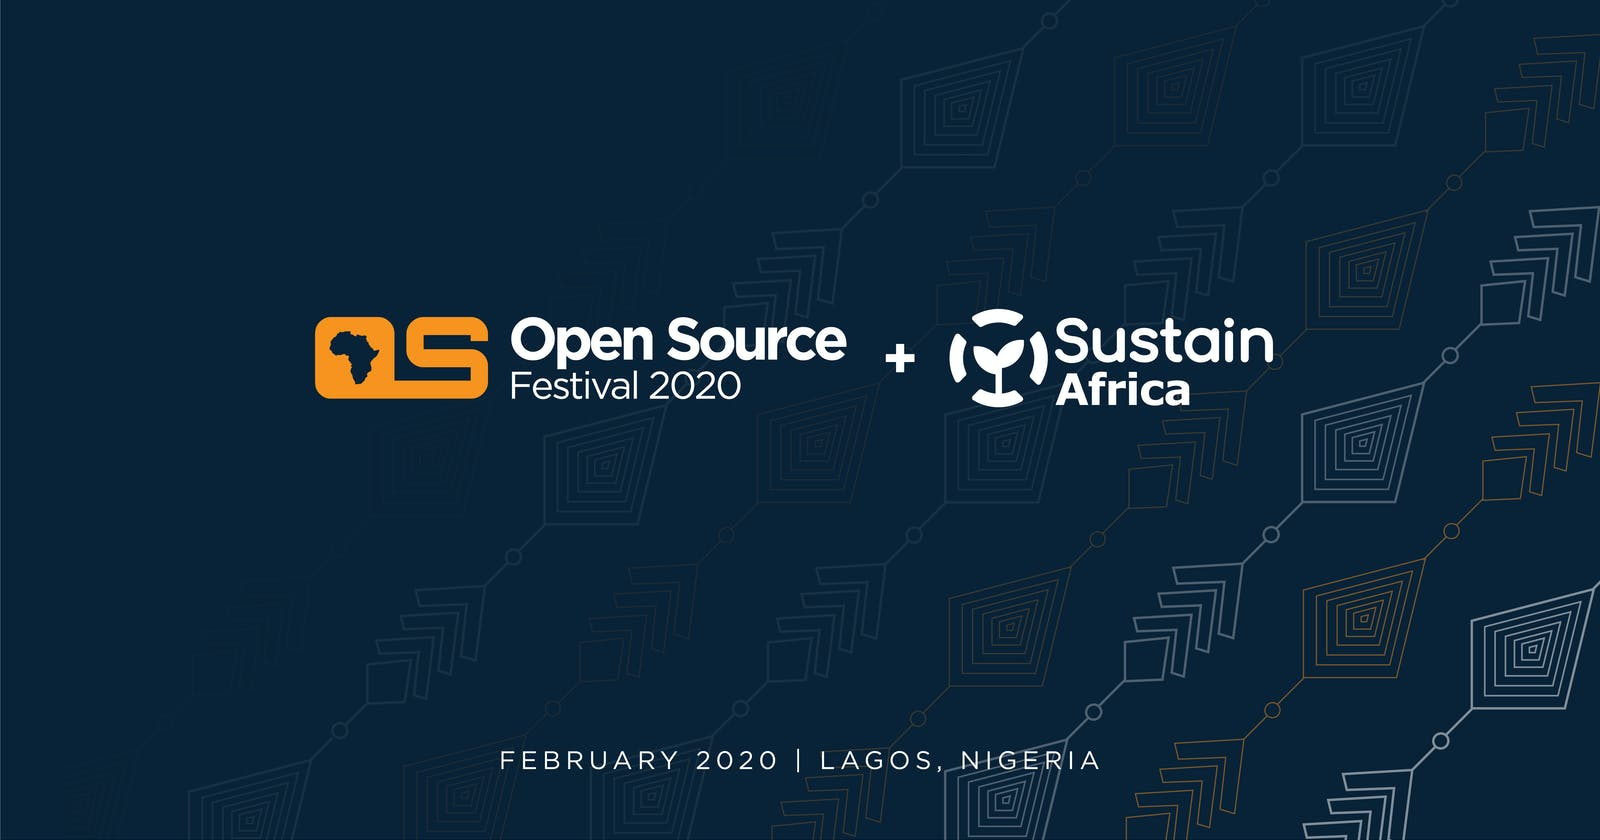 Open Source Festival 2020: Updates and Highlights